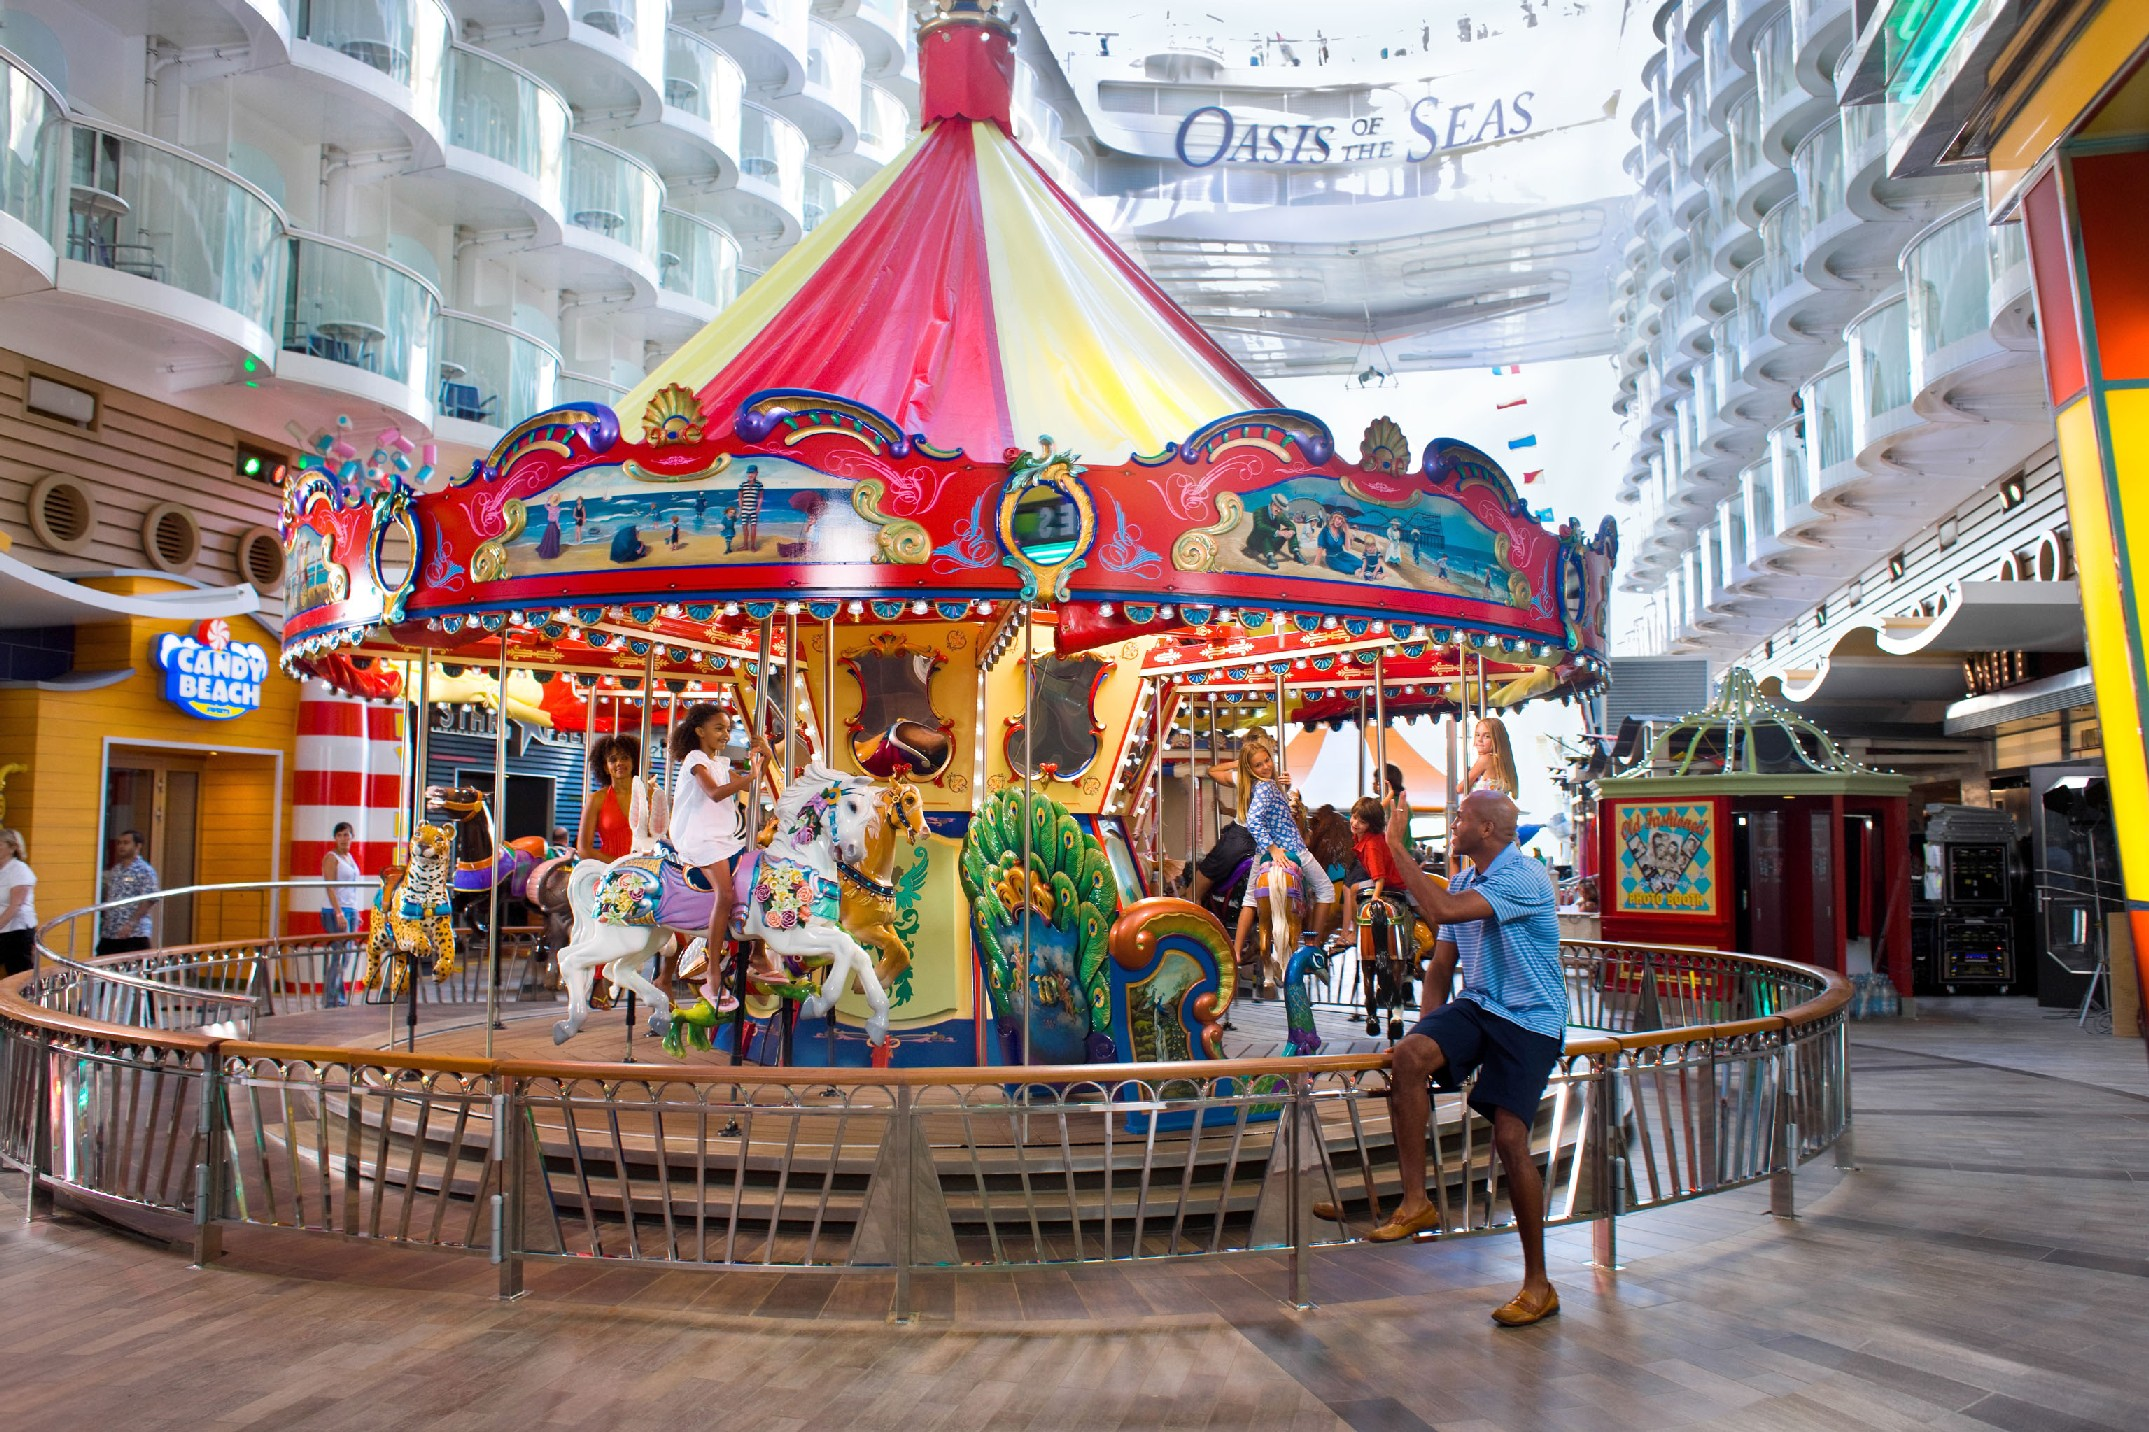 Carrossel no no Oasis of the Seas (foto: Royal Caribbean International / Divulgação)